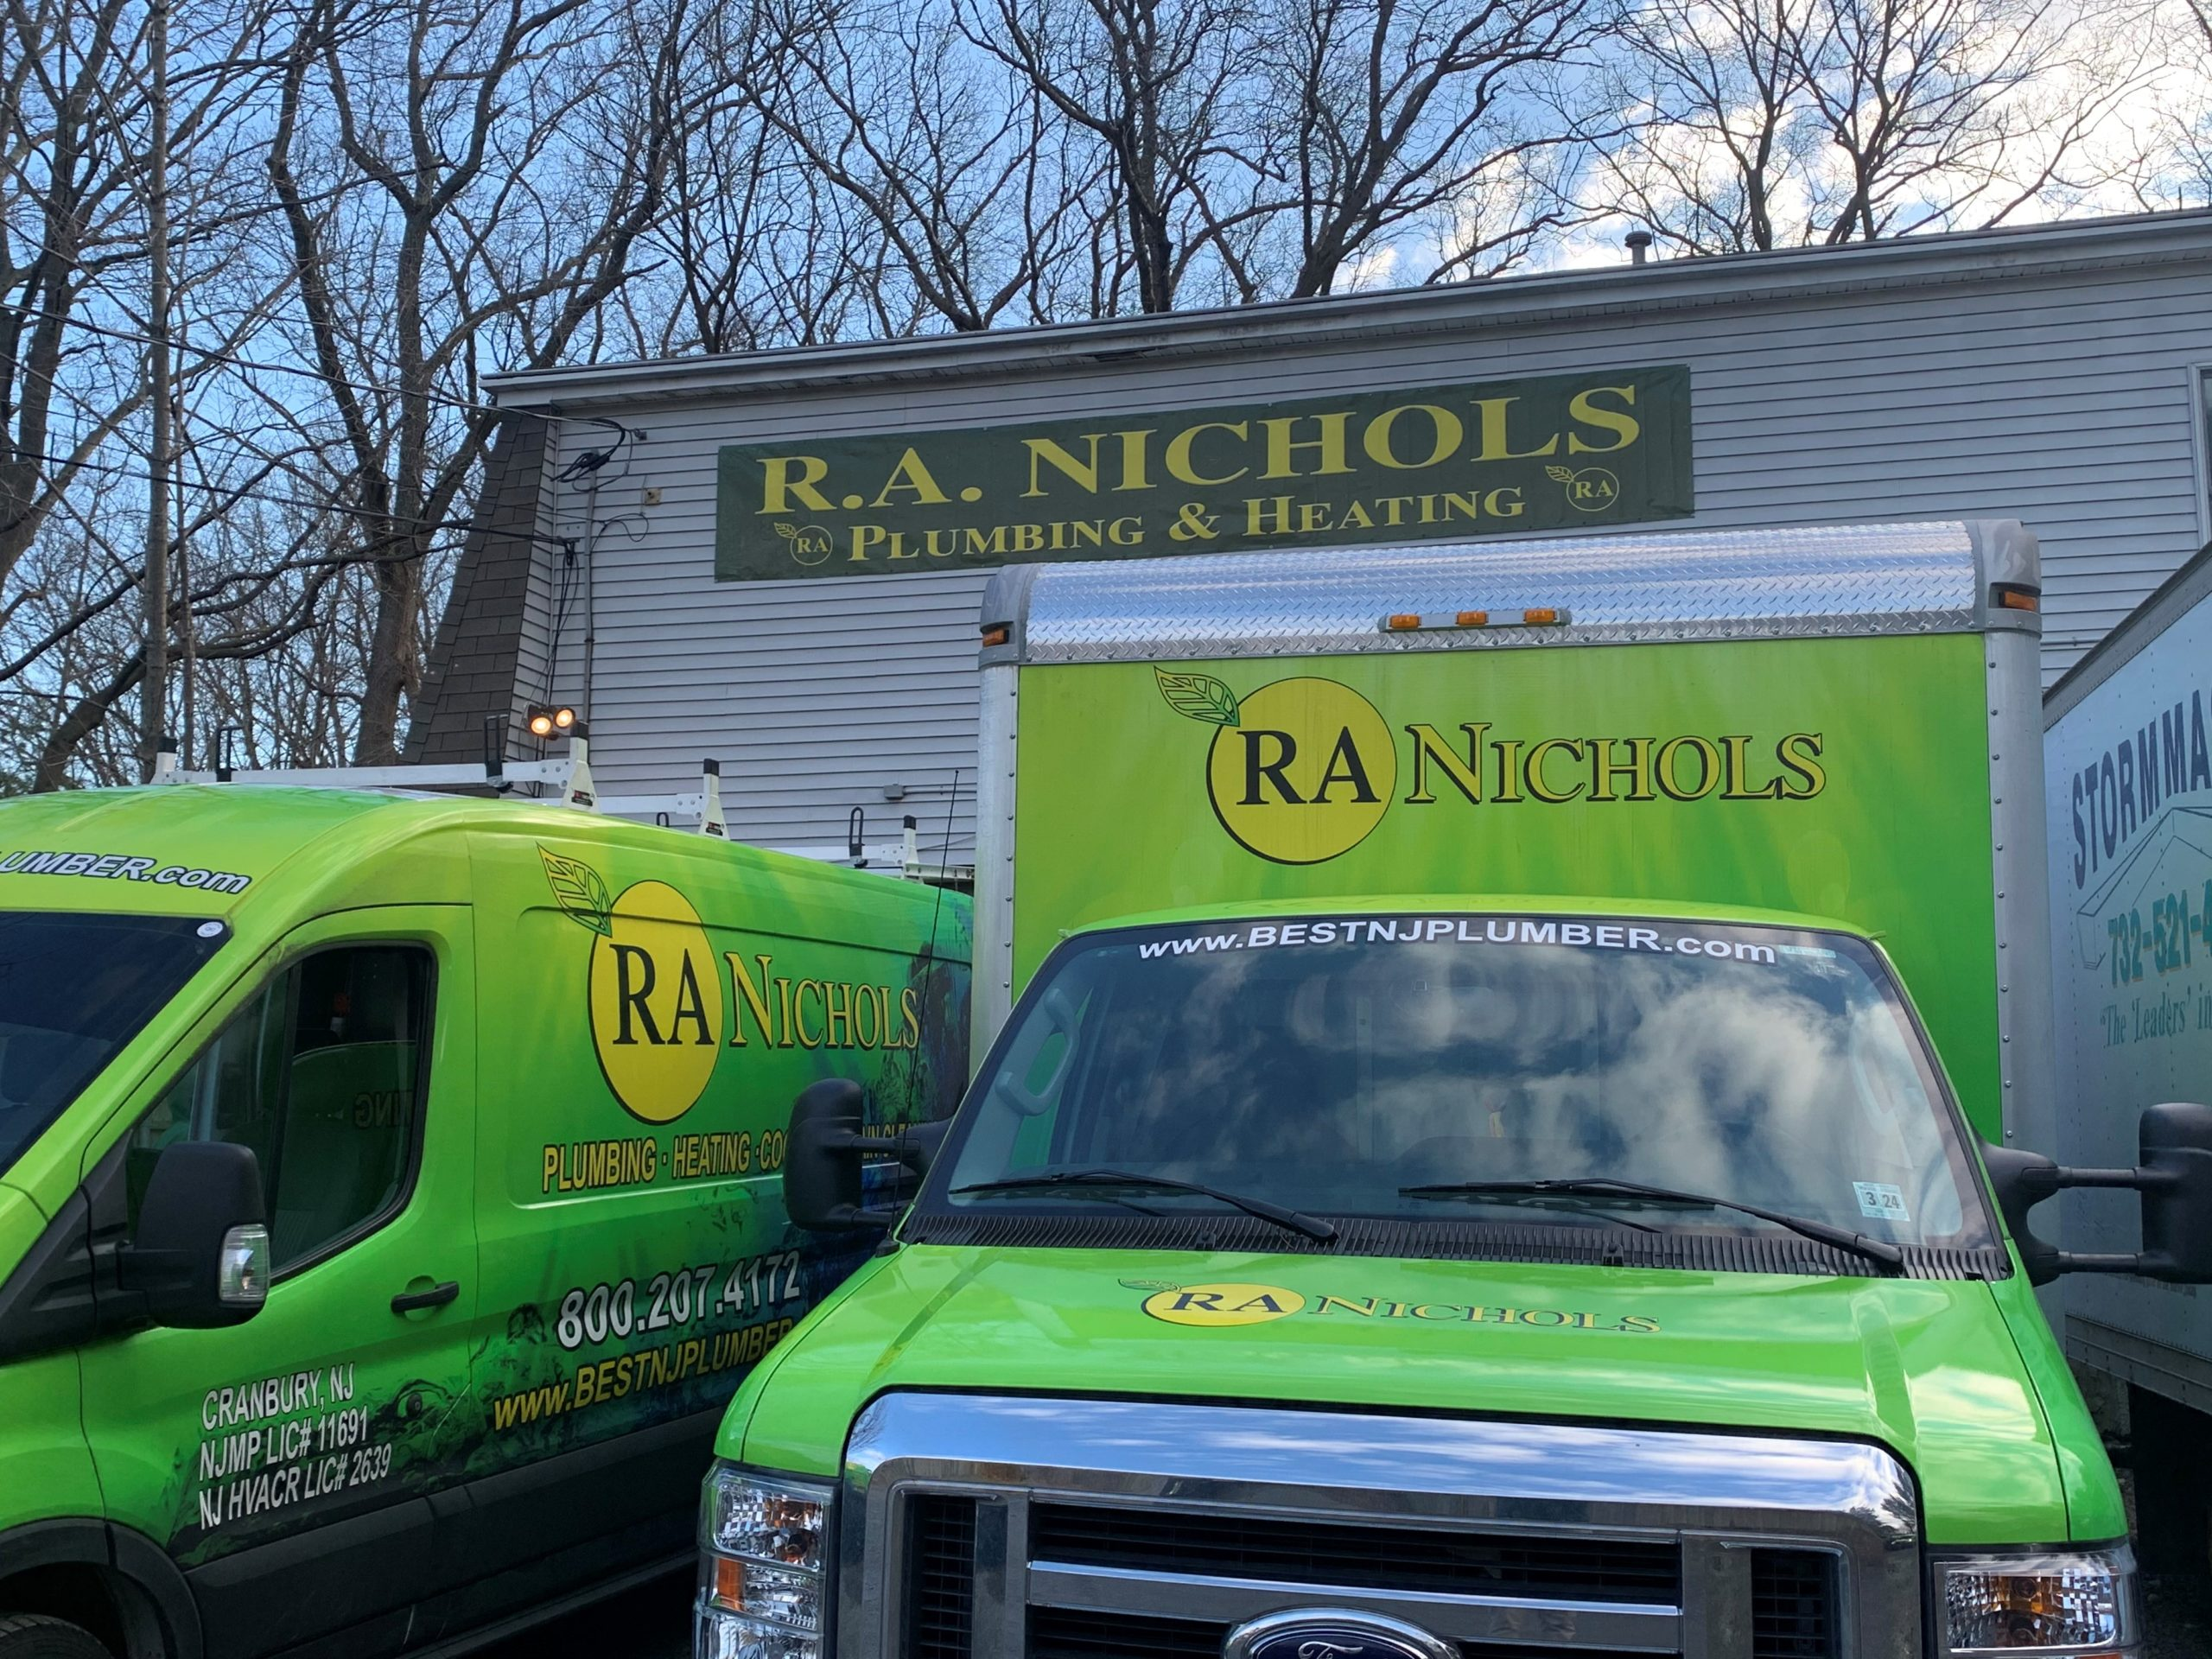 About Us Helmetta Nj R A Nichols Plumbing Heating Cooling Drain Cleaning